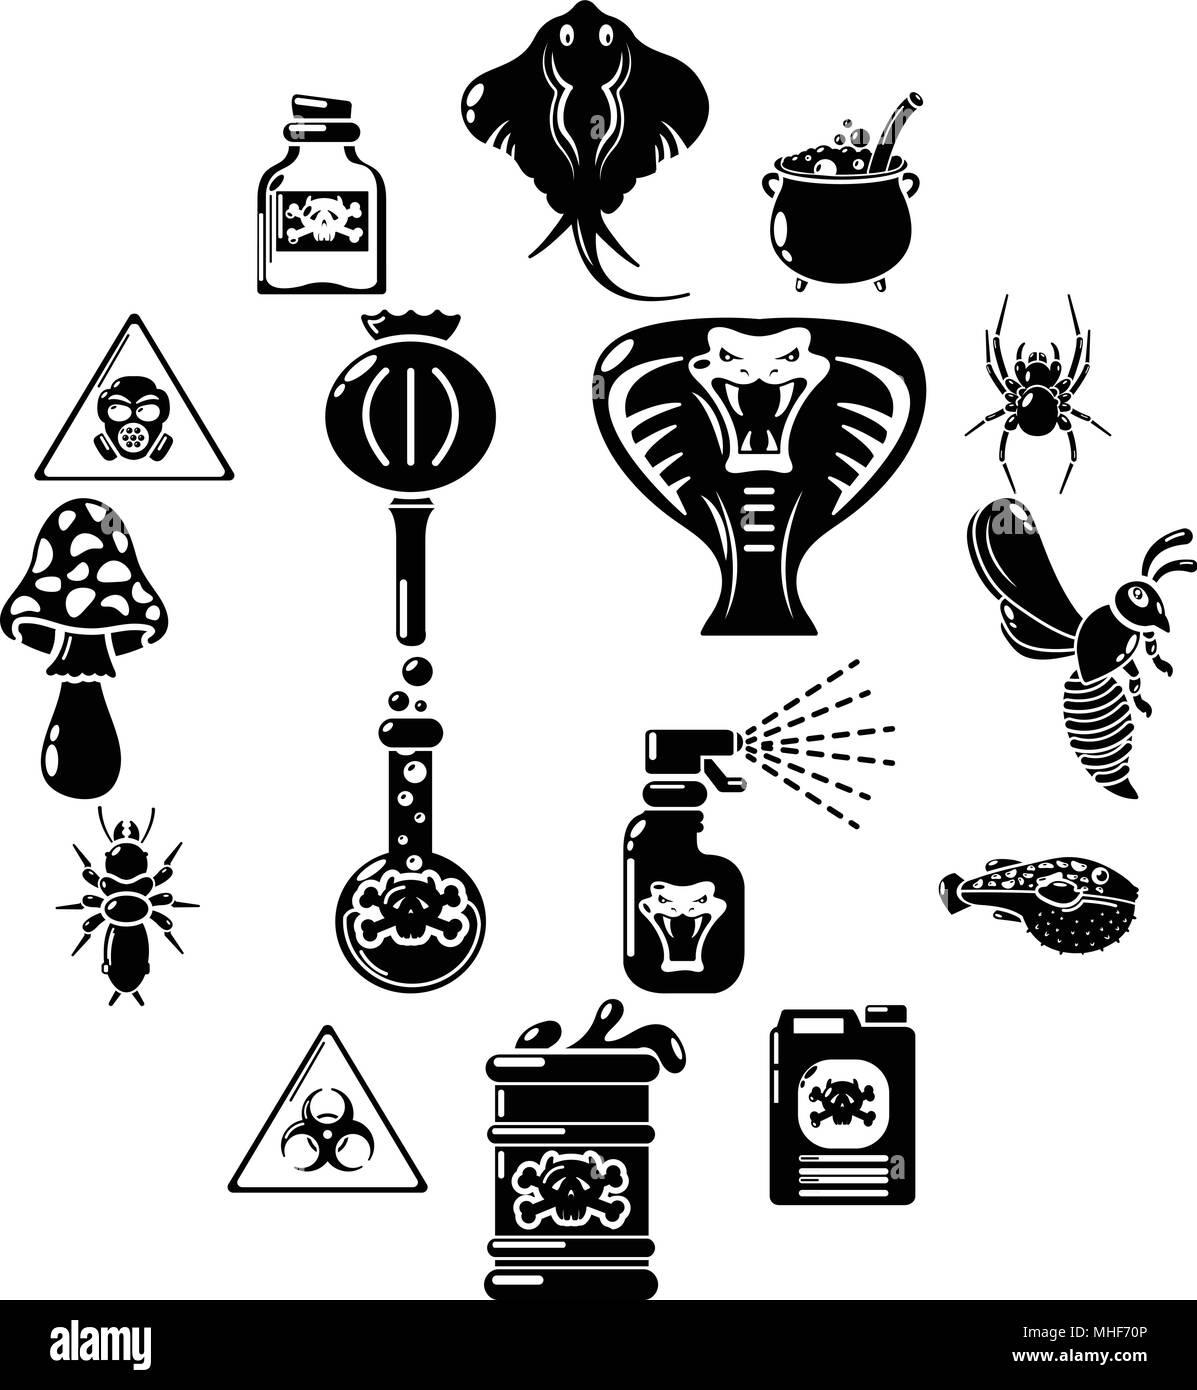 Poison danger toxic icons set, simple style - Stock Image